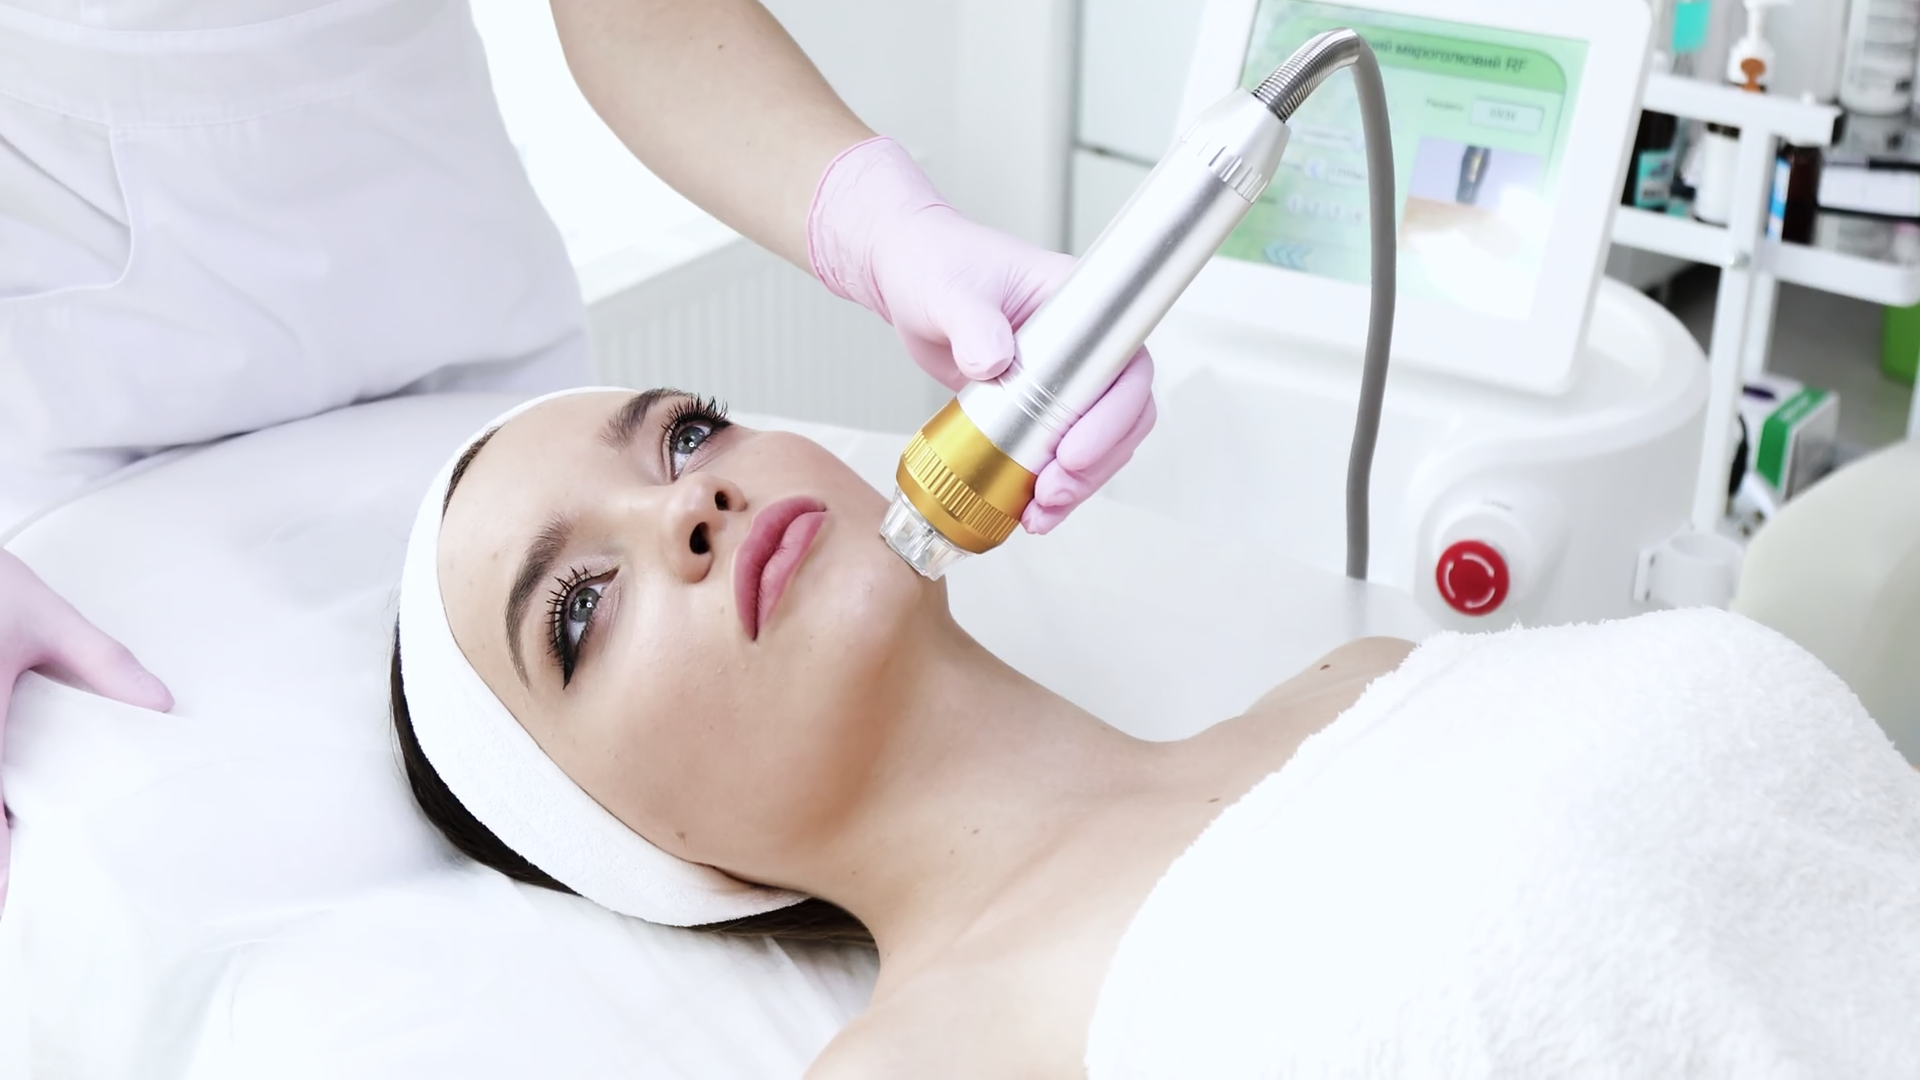 Beautys Woman Getting Microdermabrasion At Beauty Salon With Special Equipment Medical Sterile White Cabinet Woman Enjoying The Beauty Procedure Skin Care Cosmetology Healthy Beauty Stock Video Footage Storyblocks